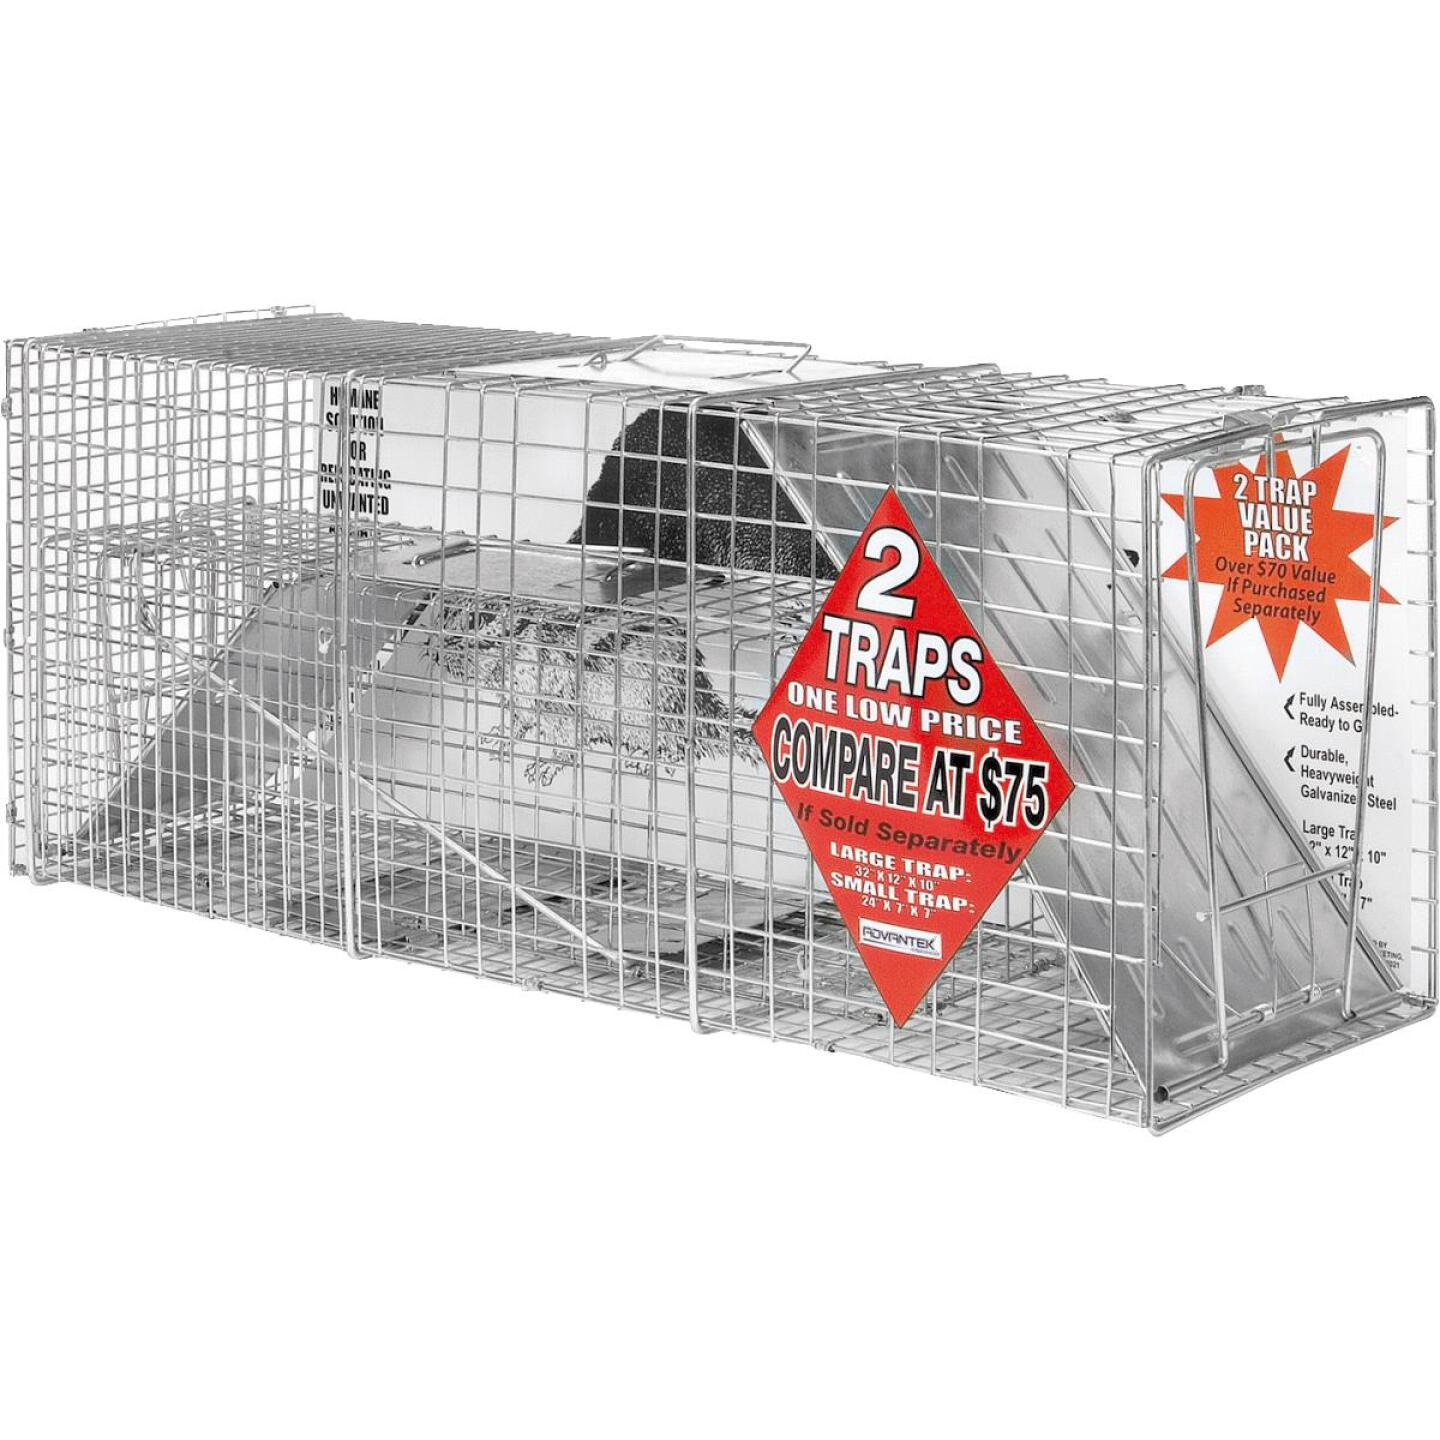 Advantek Galvanized 32 In. Catch & Release Animal Trap (2-Pack) Image 1